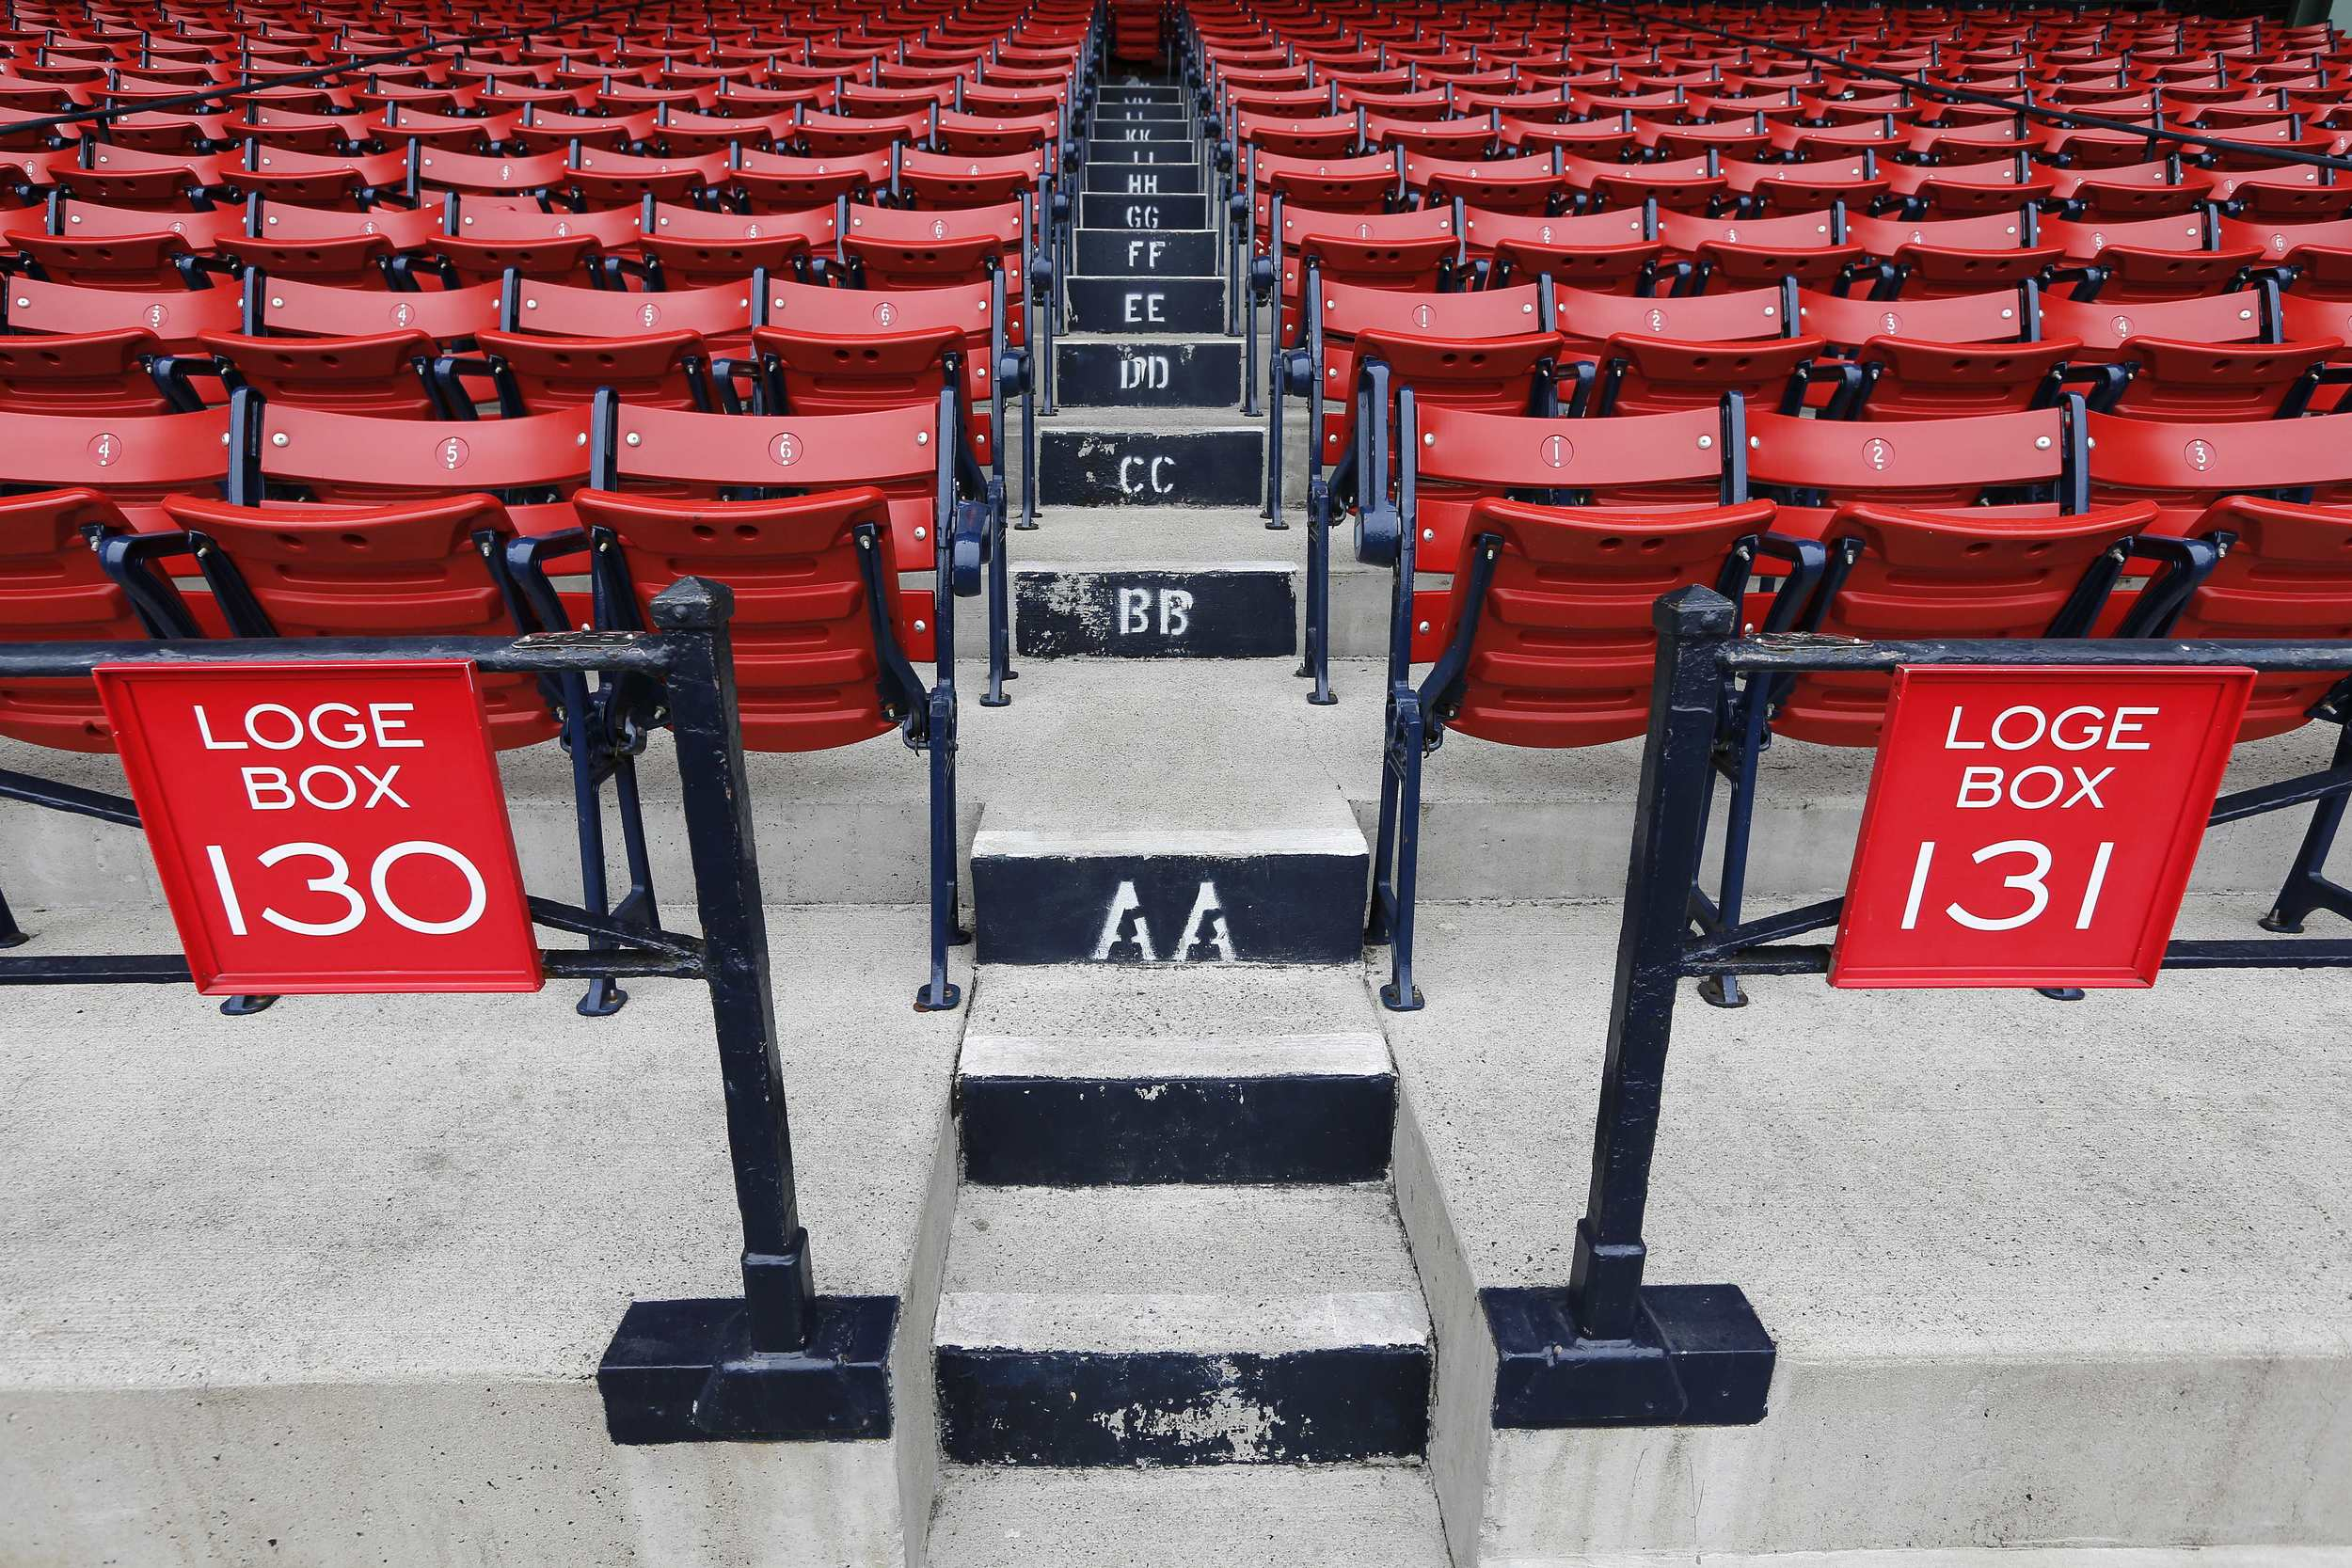 Empty seats are seen at Fenway Park in Boston, Monday, Oct. 5, 2015, a day after the Boston Red Sox finished the baseball season in last place in the American League East. (Michael Dwyer/AP)